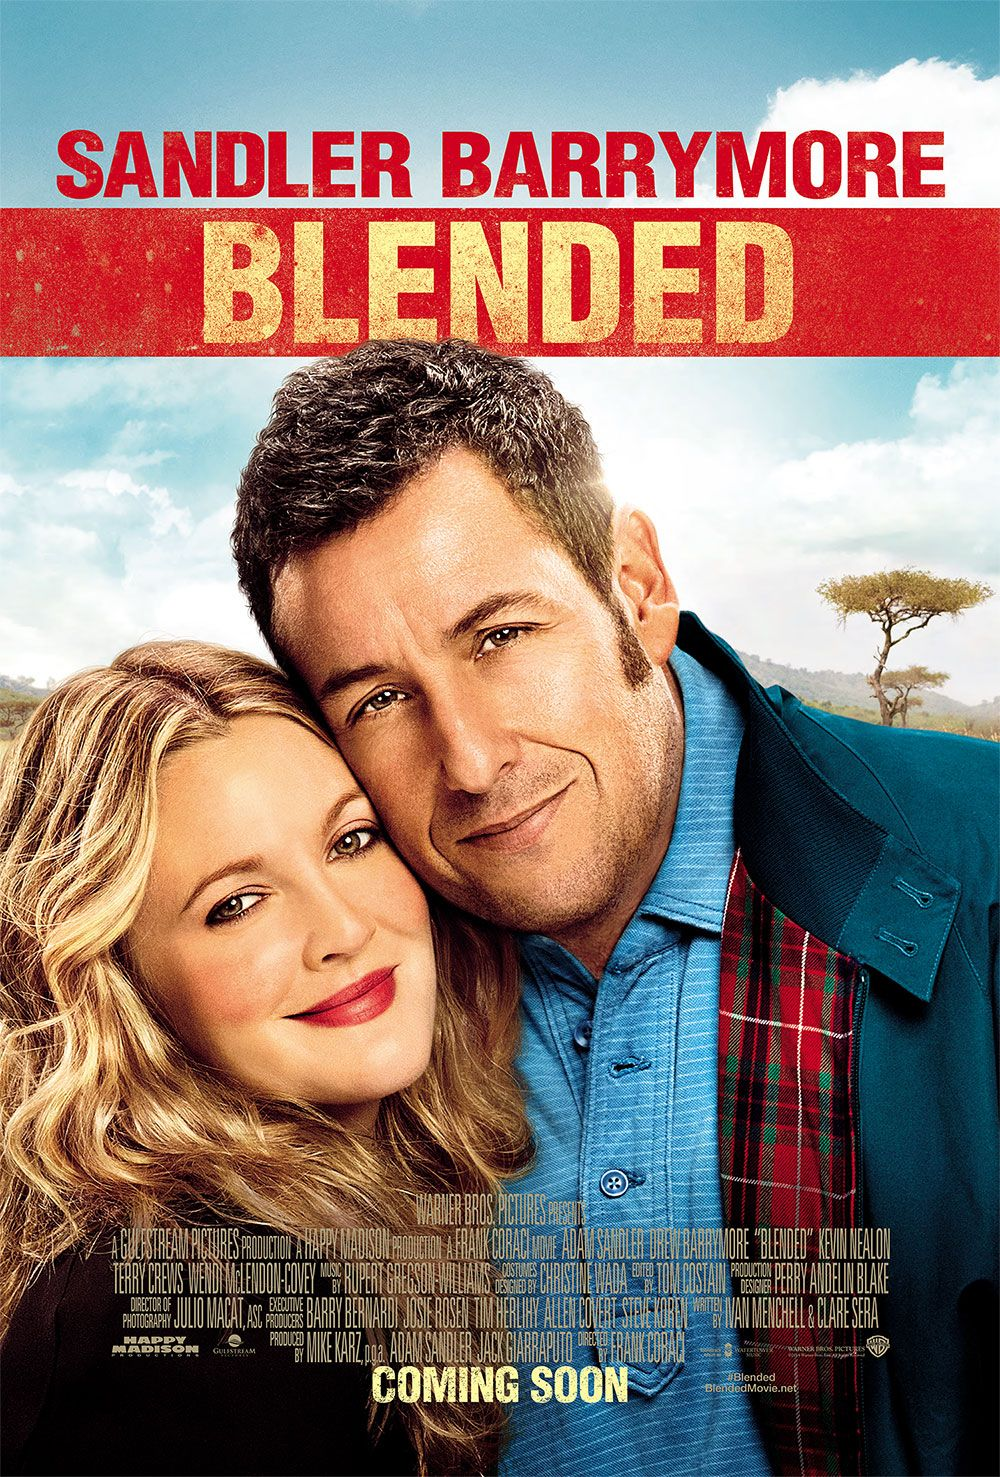 Adam Sandler and Drew Barrymore star as single parents